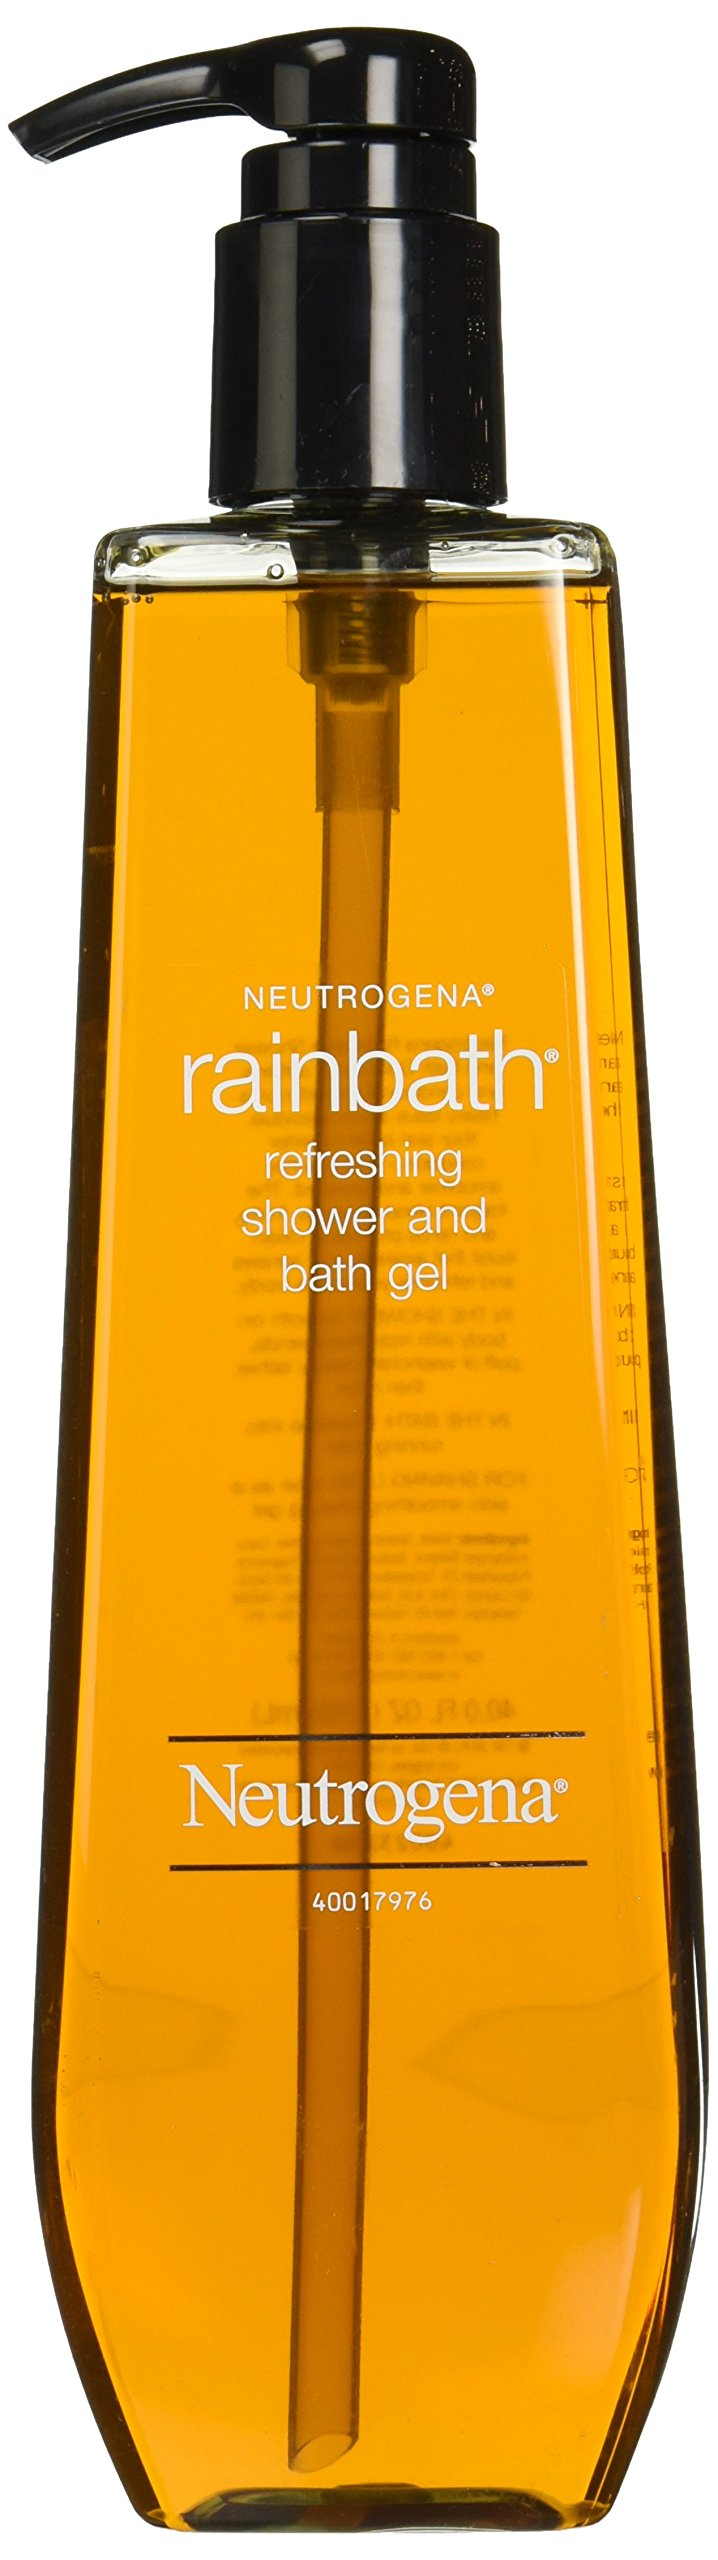 Neutrogena Rainbath Refreshing Shower and Bath Gel- 40 oz (Mega Size) by Neutrogena